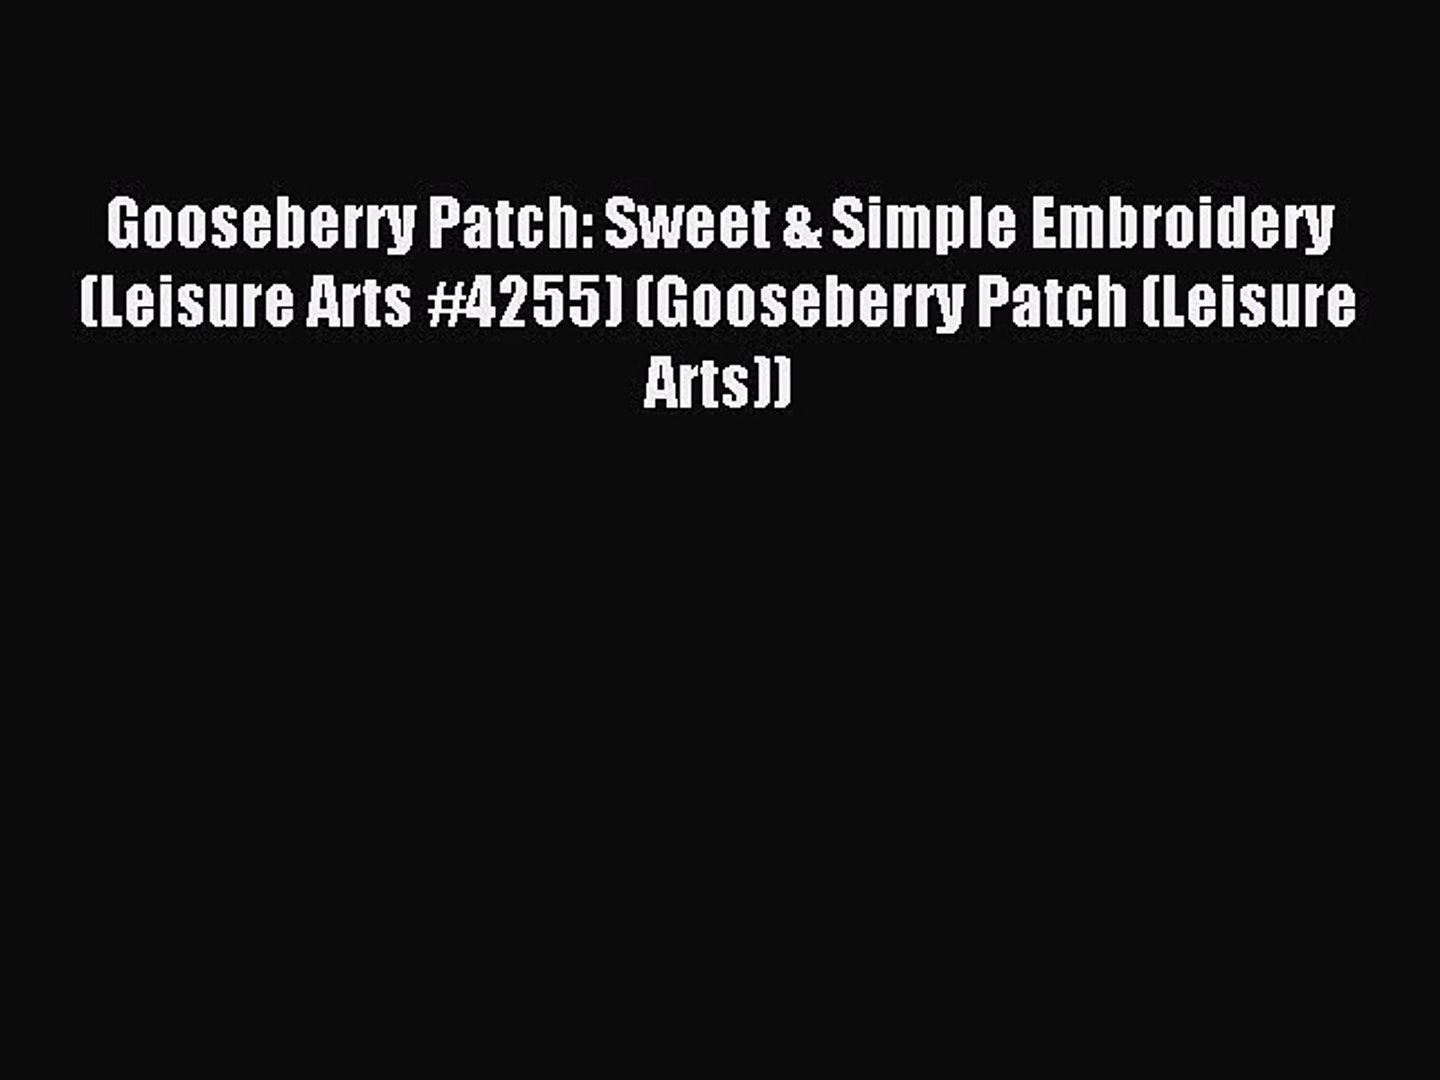 Read Gooseberry Patch: Sweet & Simple Embroidery (Leisure Arts #4255) (Gooseberry Patch (Leisure